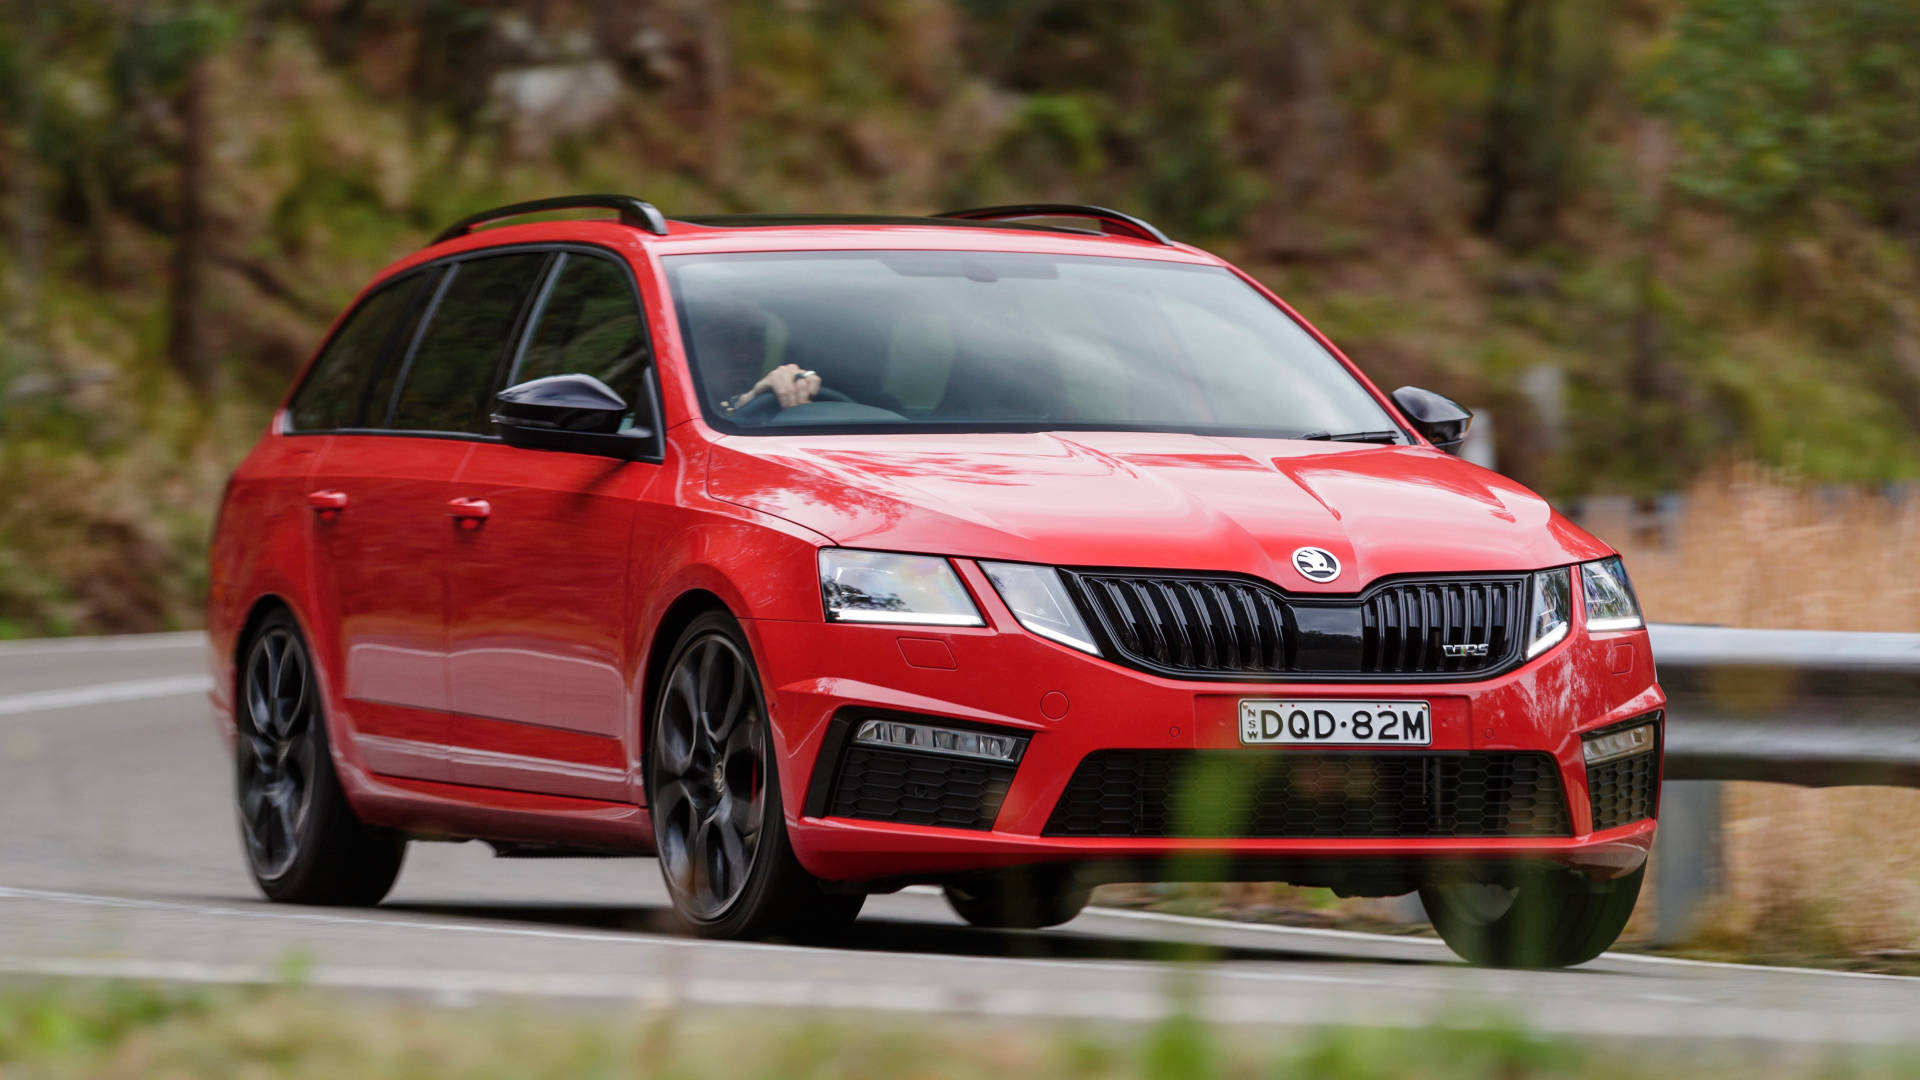 2018 Skoda Octavia RS245 red front detail